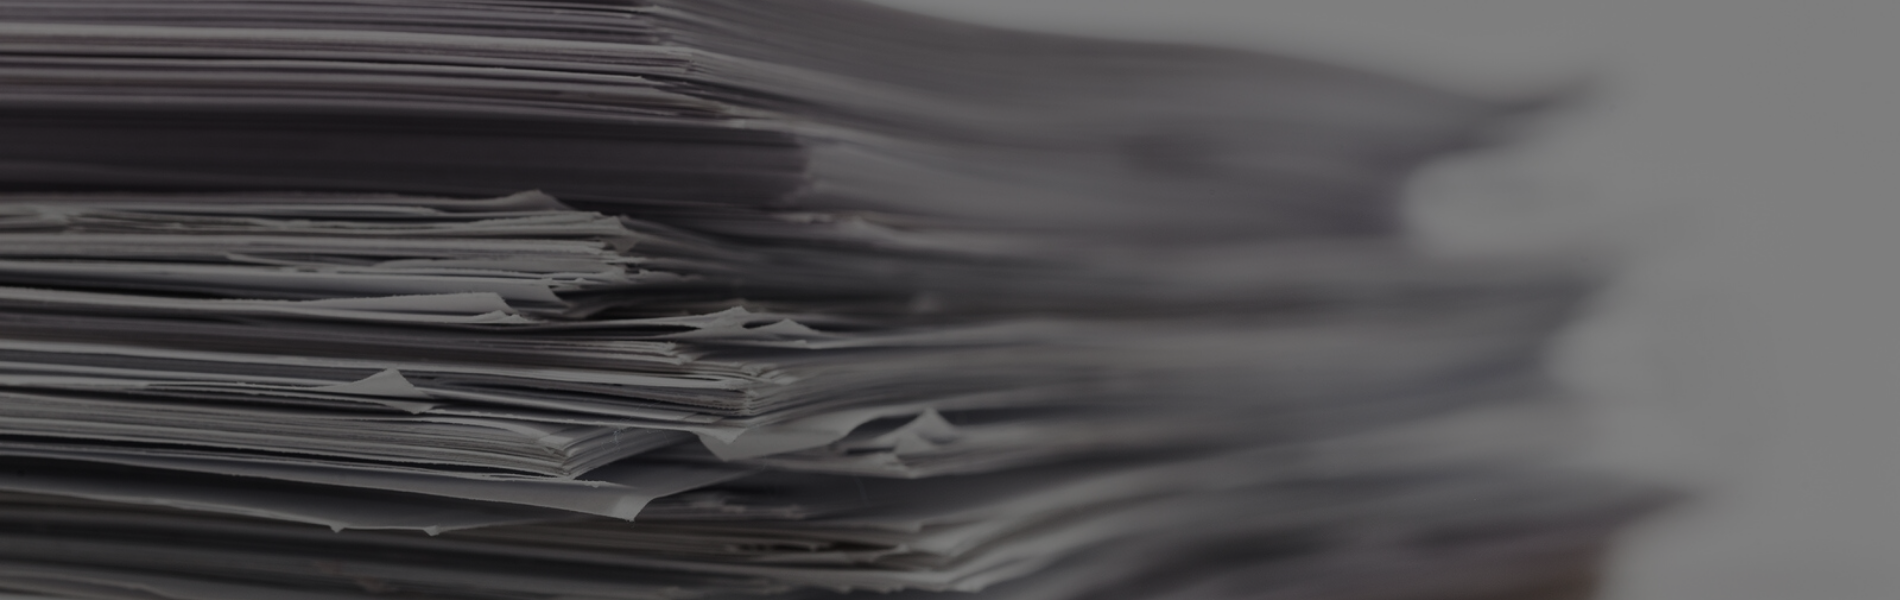 Close up photo of a stack of papers